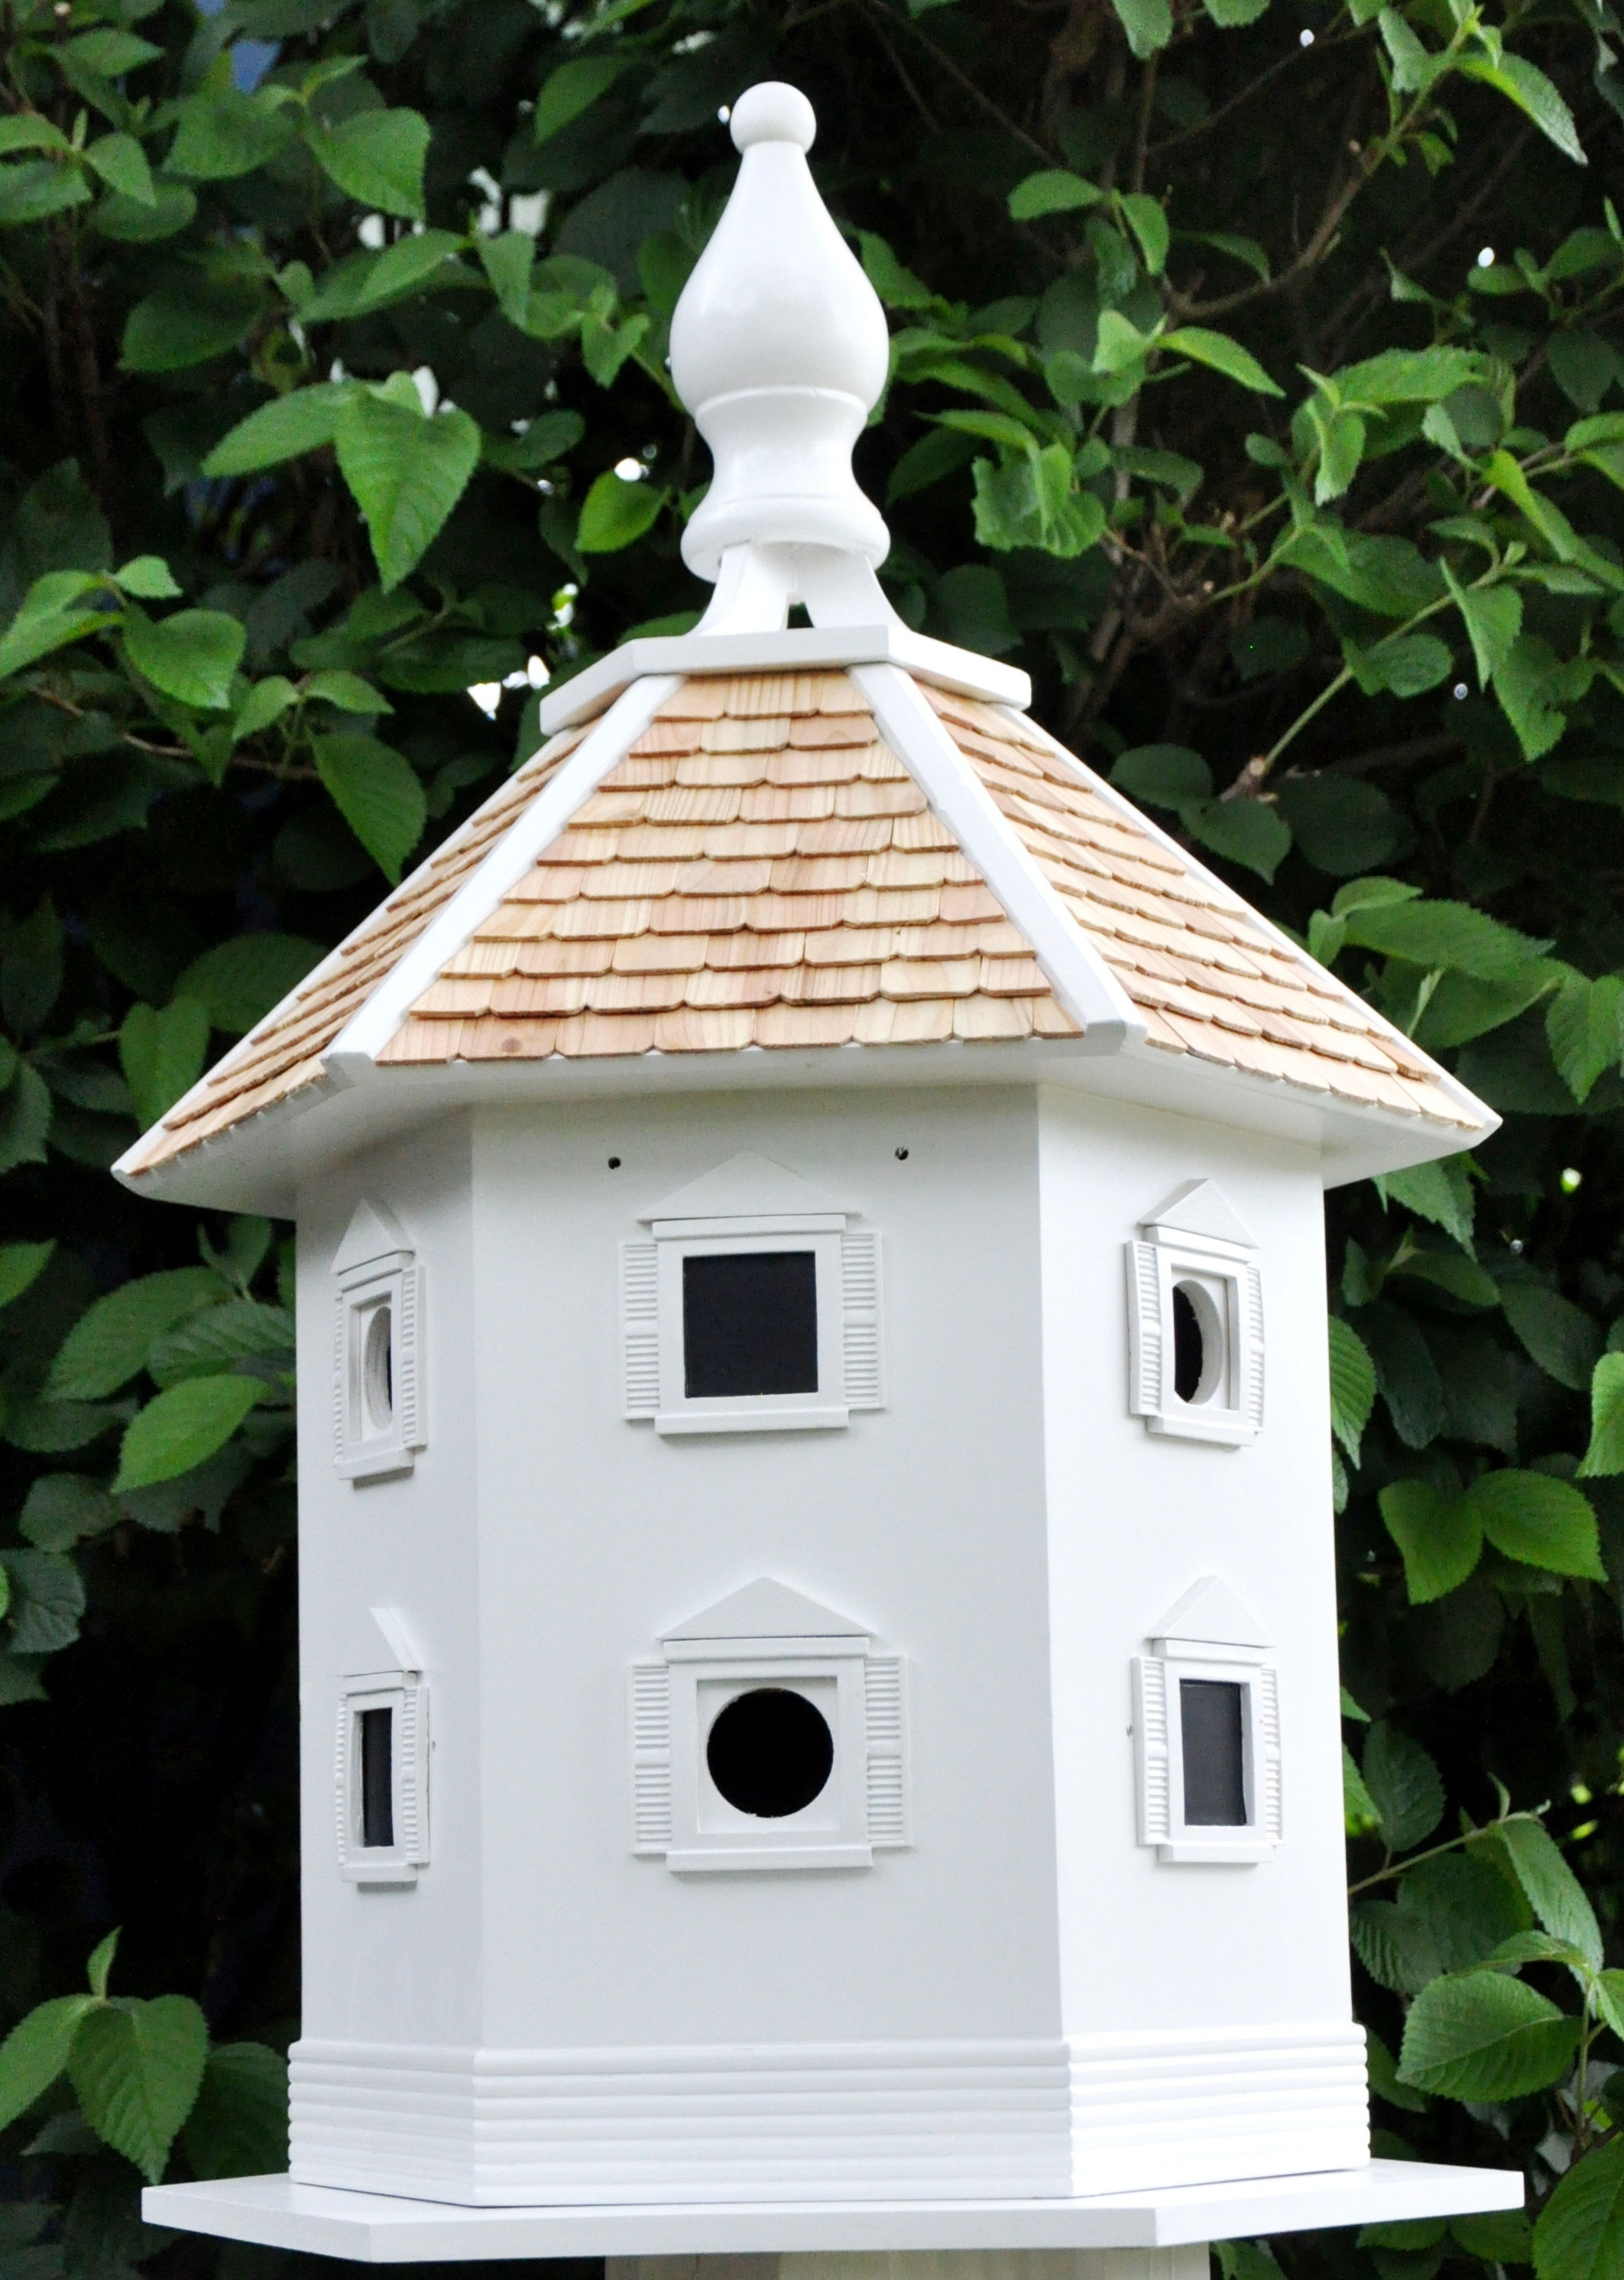 White Danbury Dovecote 6 Room Bird House Yard Envy